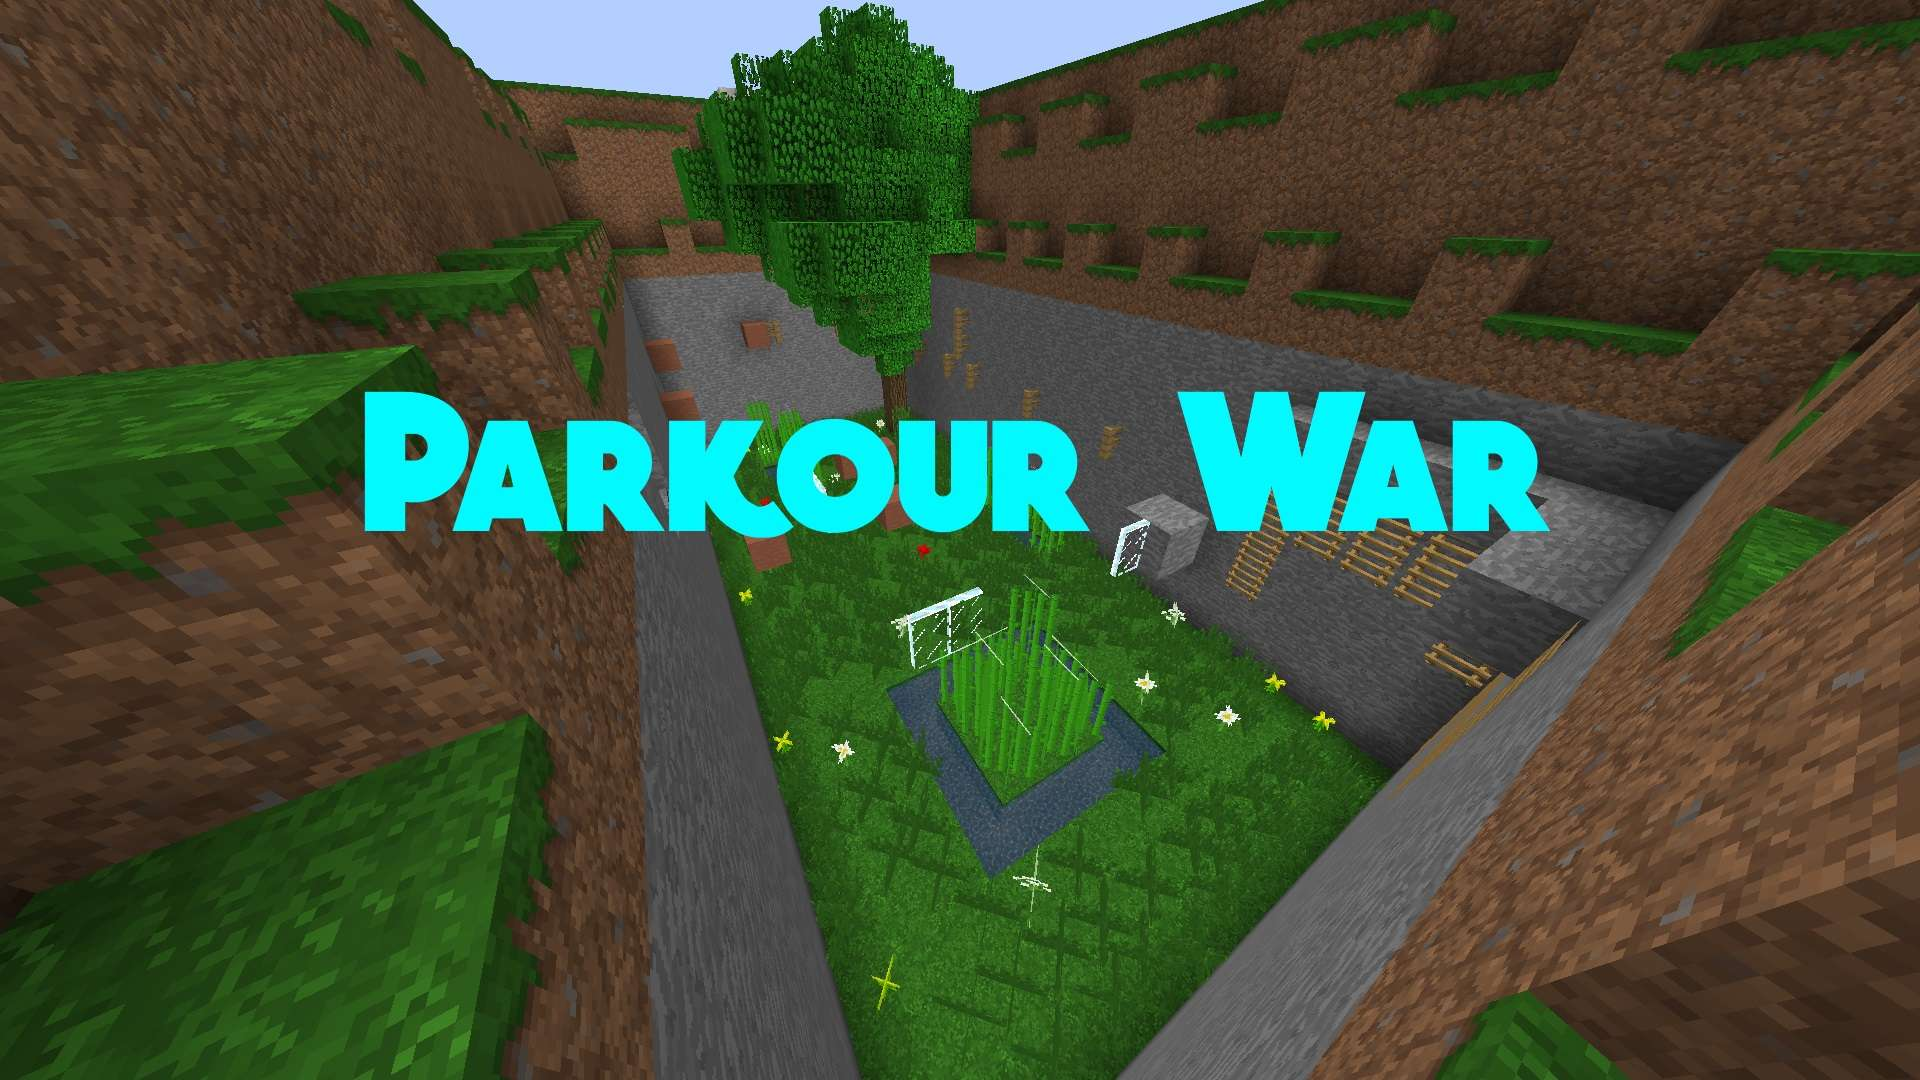 Parkour War Map for Minecraft 1.8.9/1.8 | MinecraftSix